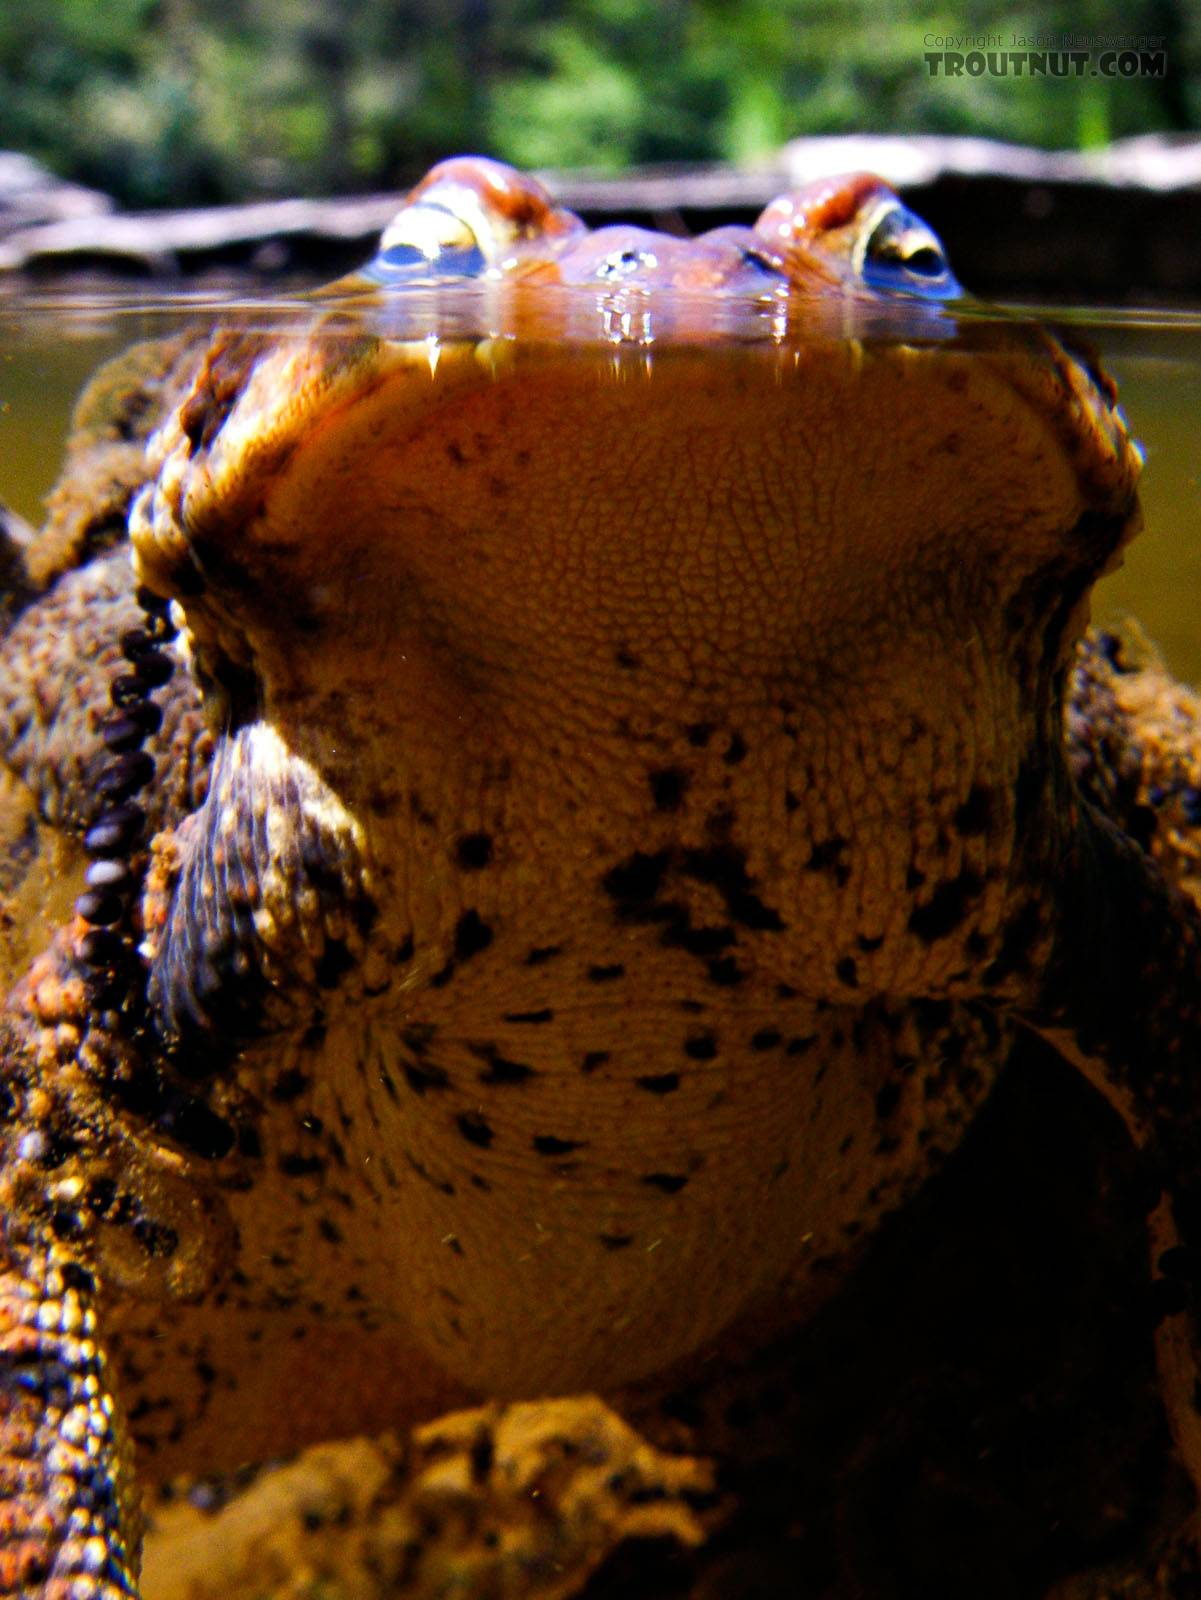 Mating toads. From the Neversink River Gorge in New York.